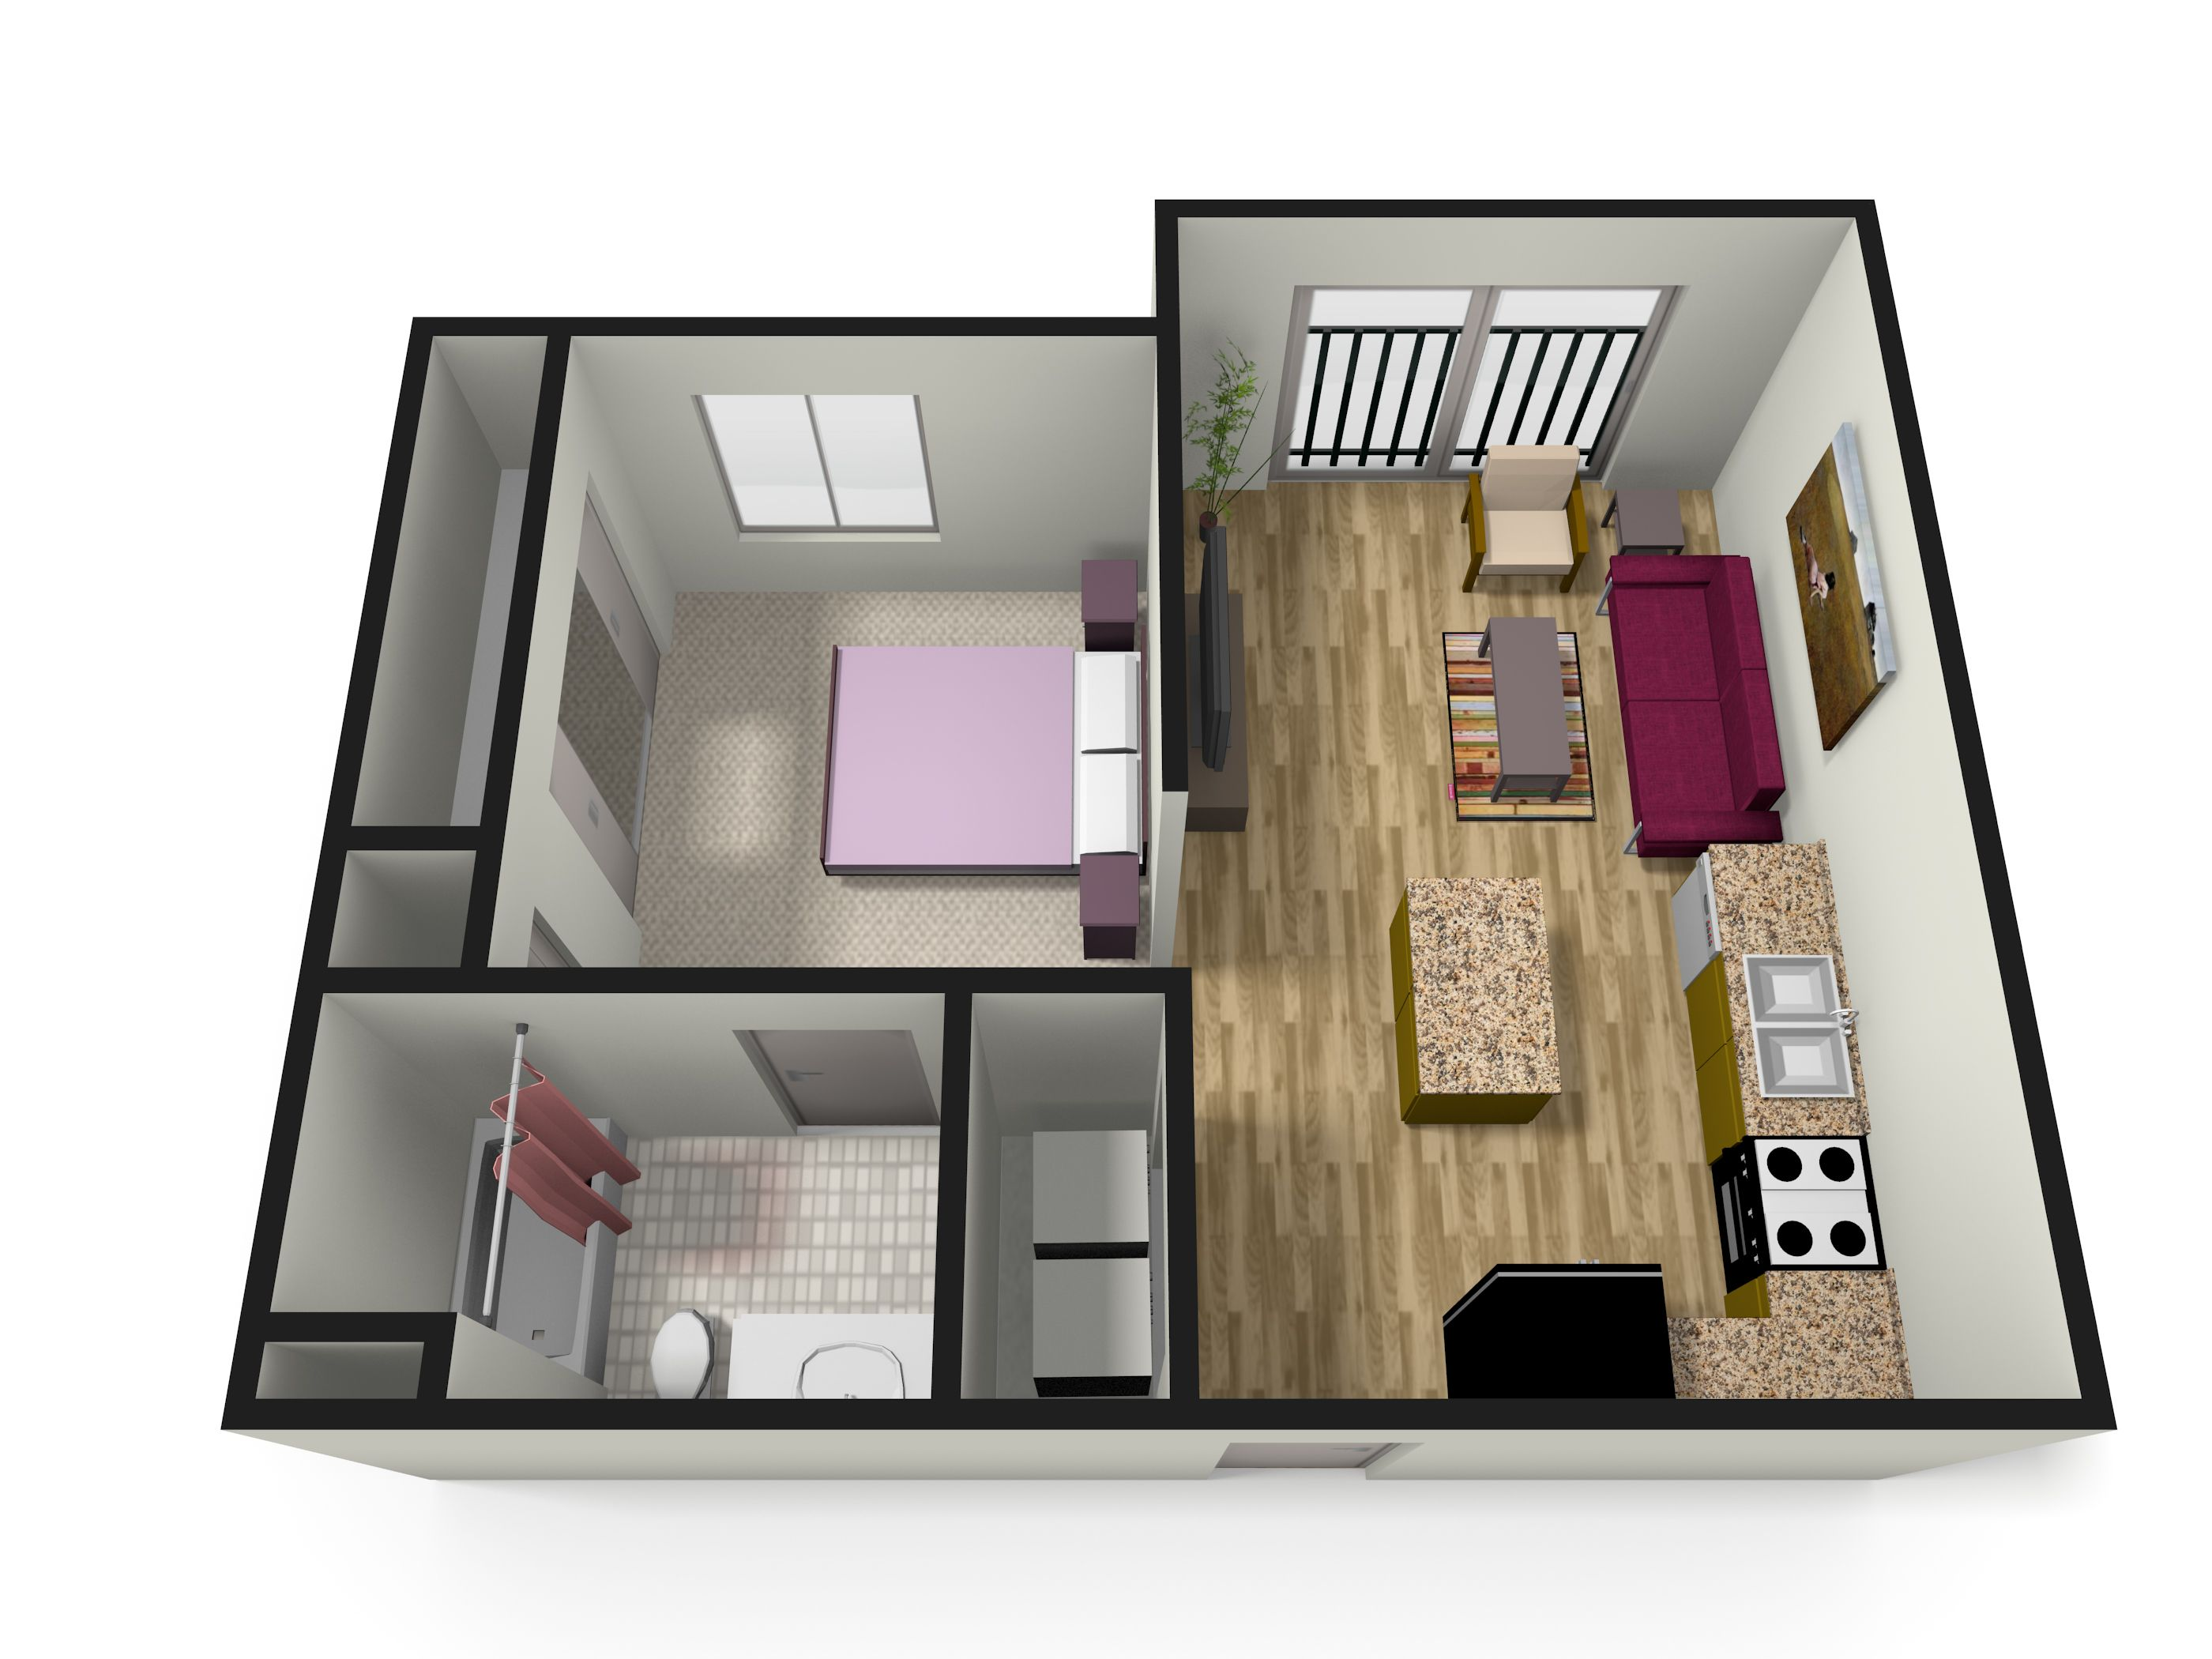 Two Bedroom House Apartment Floor Plans Basement One Amp Arlington Apartments The Commons